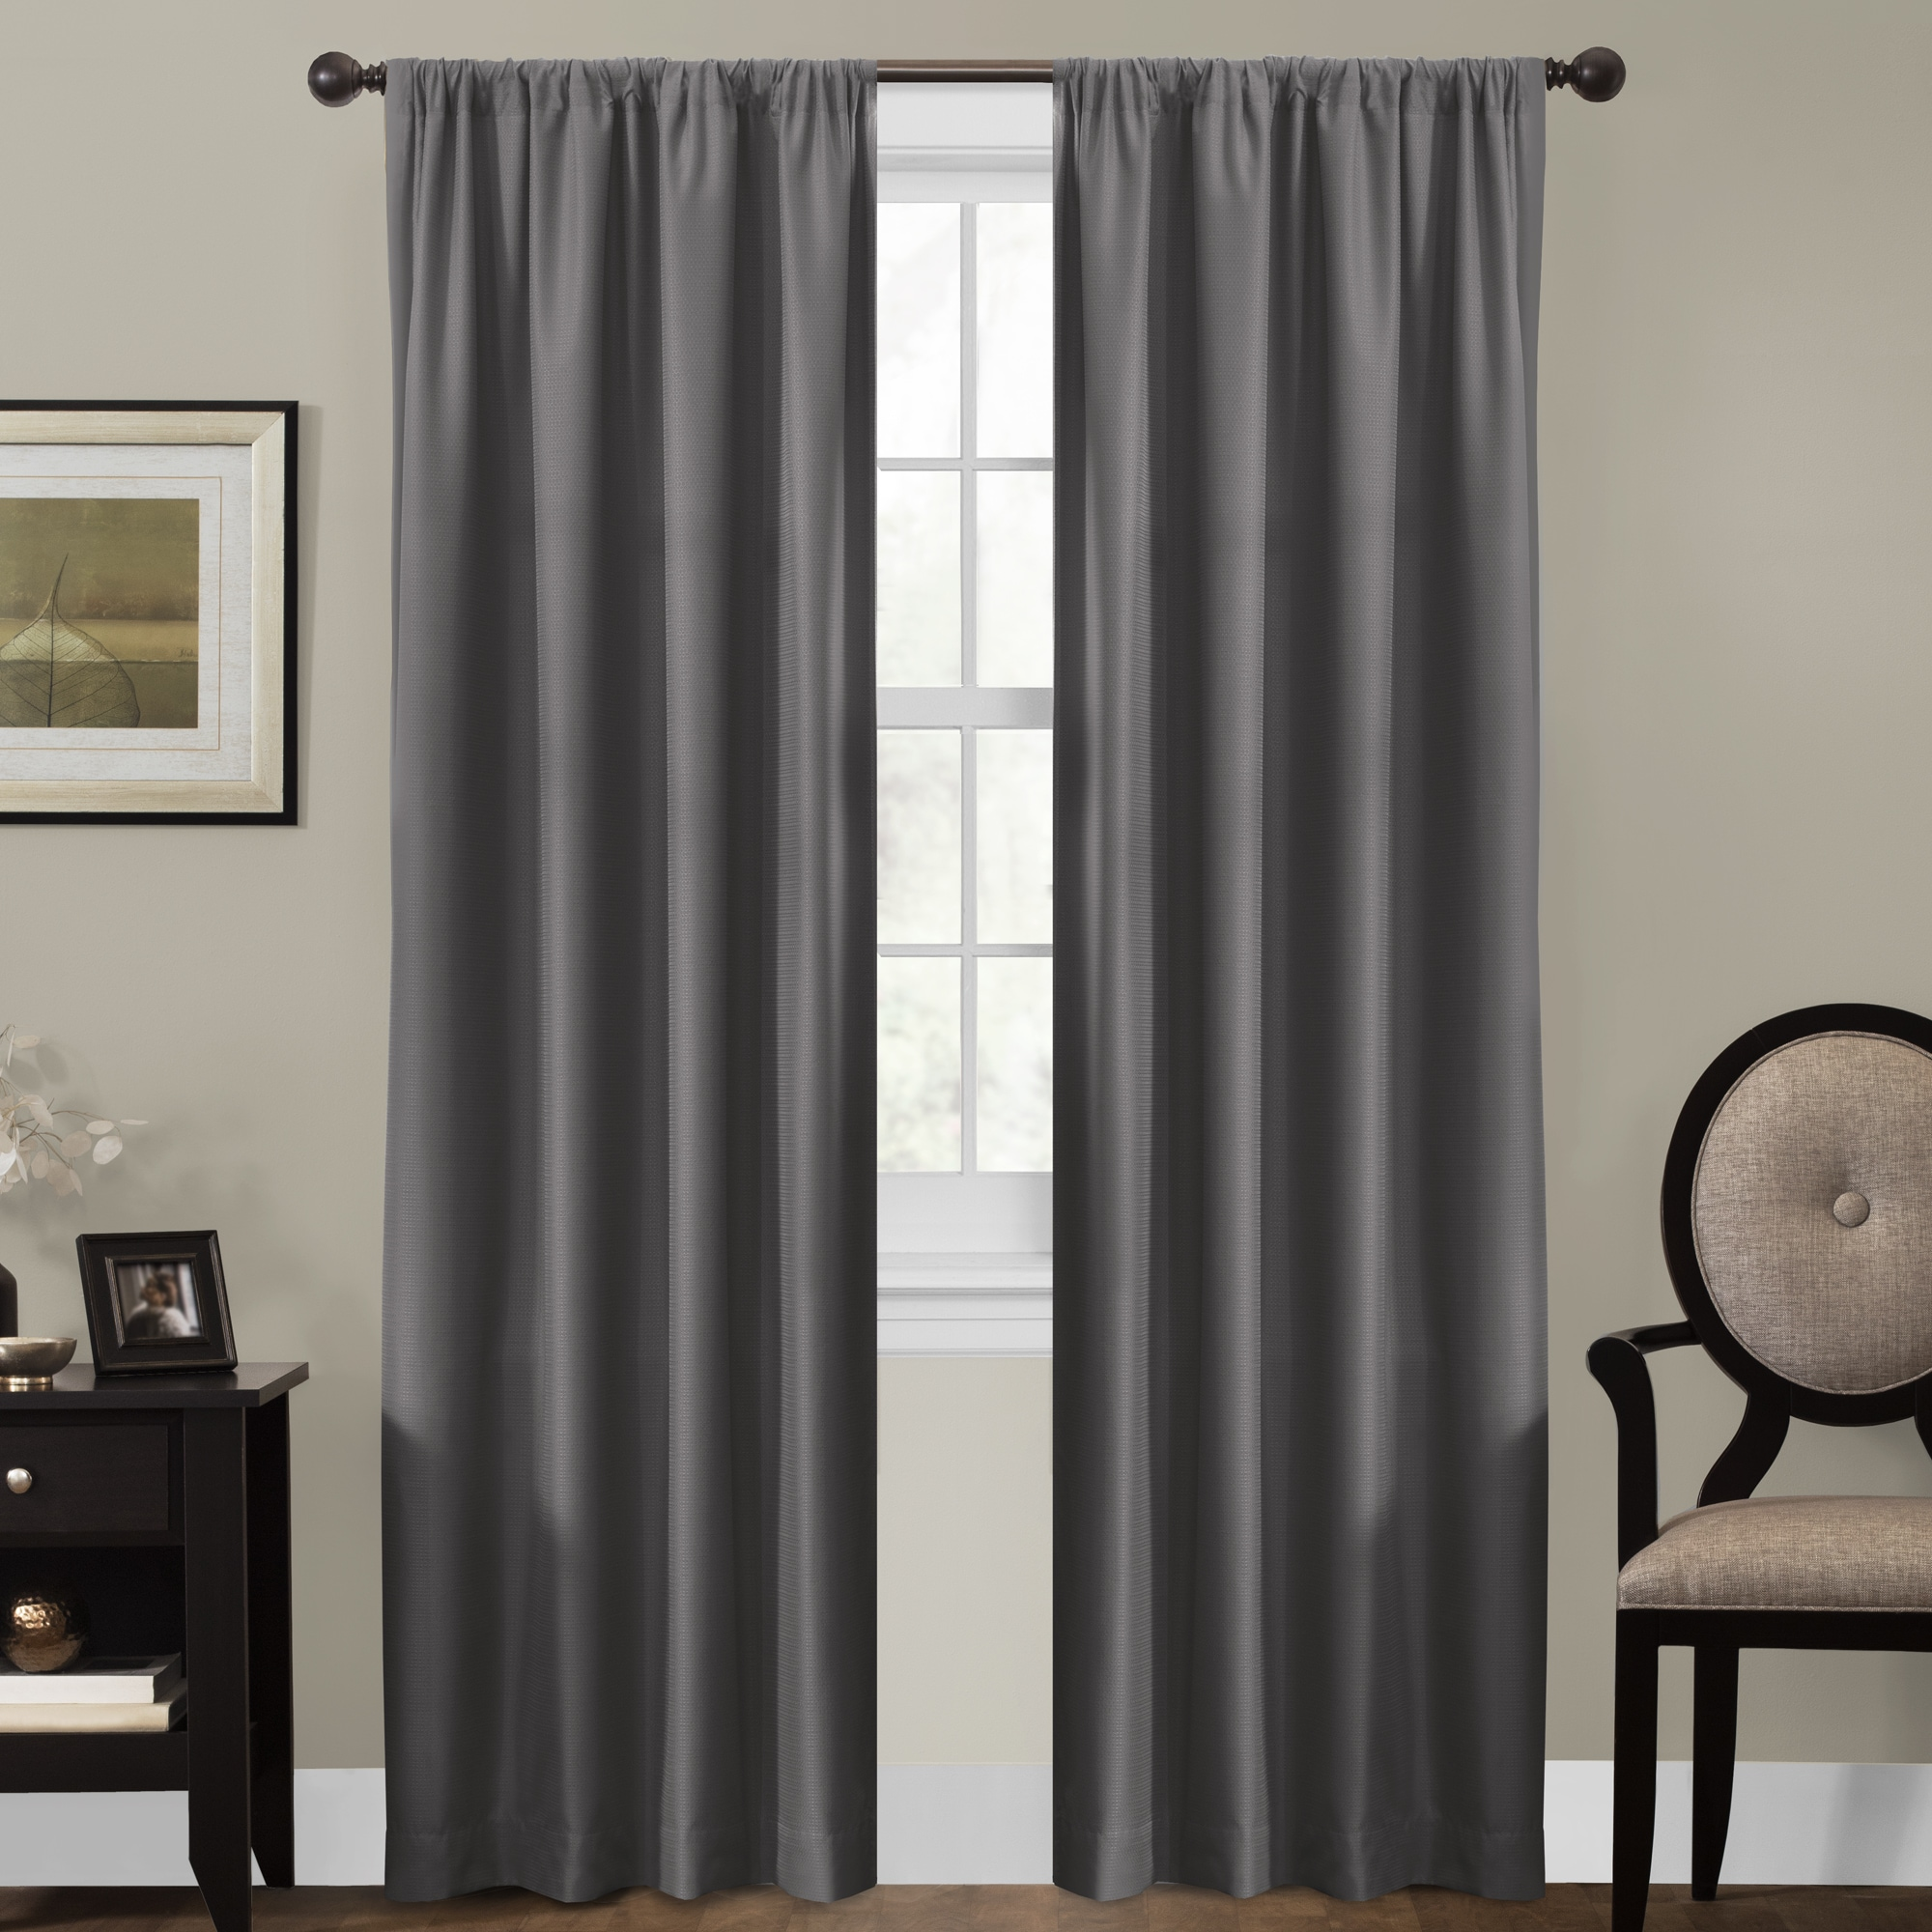 shop maytex smart curtains julius 100 percent blackout window curtain panel 50 x 84 50 x 84 free shipping on orders over 45 overstockcom - Smart Curtains